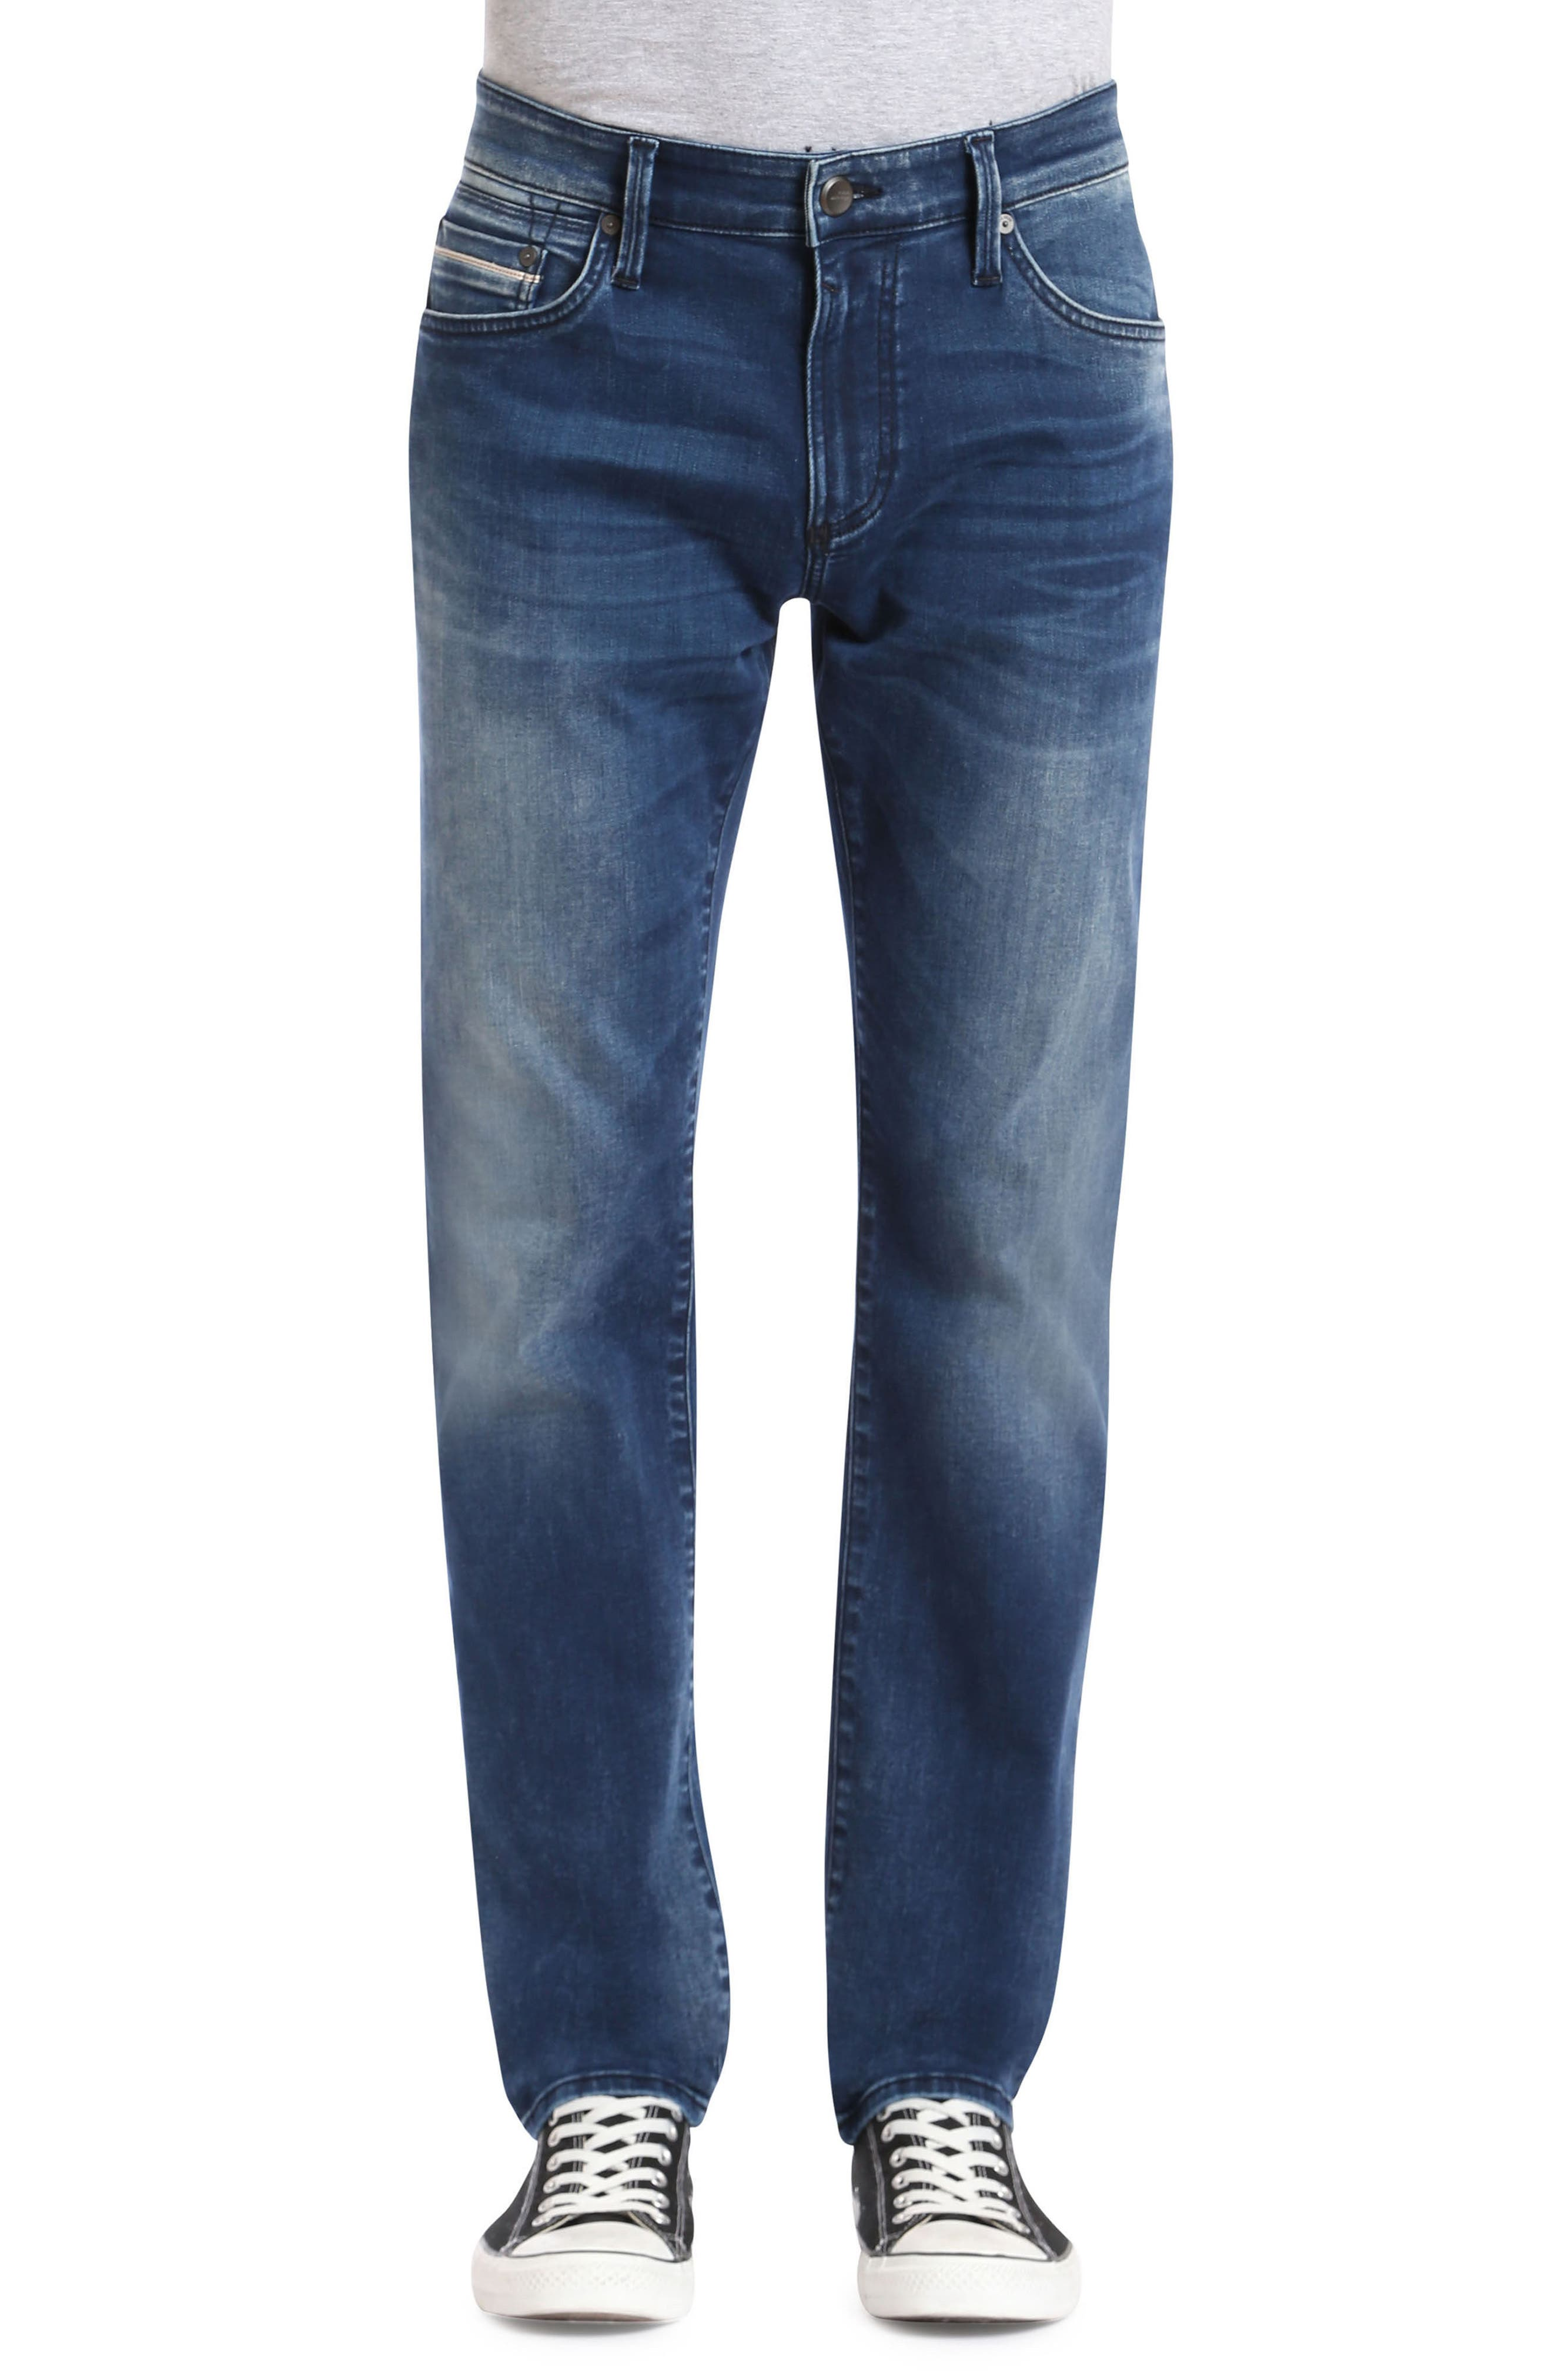 Marcus Slim Straight Leg Jeans,                         Main,                         color, Forest Blue White Edge